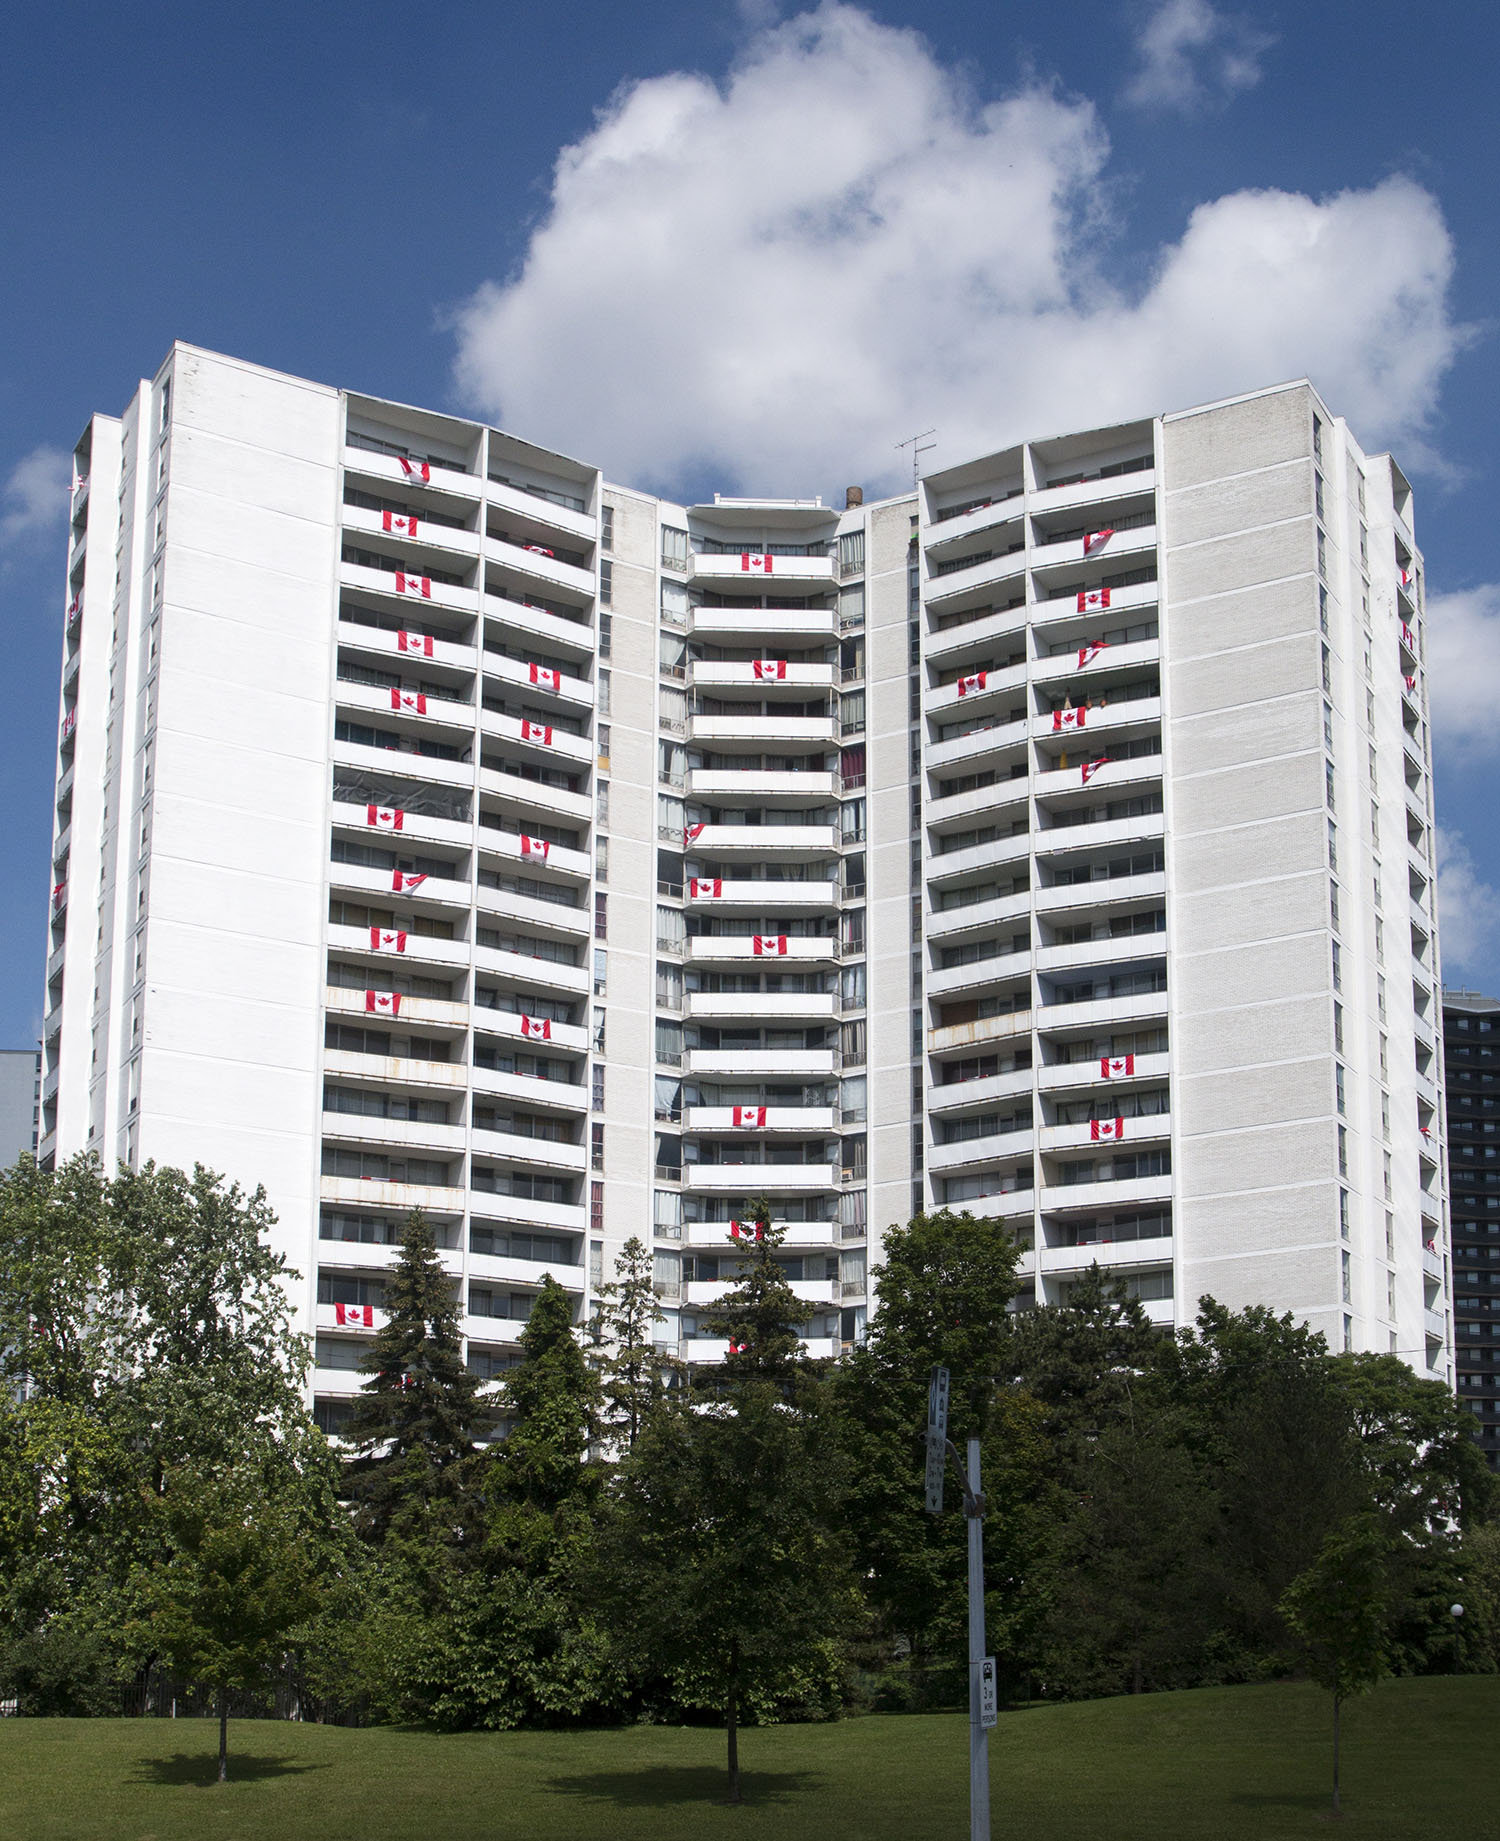 Canadian flags hang from balconies in Toronto, Ontario for the Canada Day 150 celebrations in 2017. The building is on Gradyon Hall Drive and Don Mills near the 401. Image by Dennis Marciniak of denMAR Media.